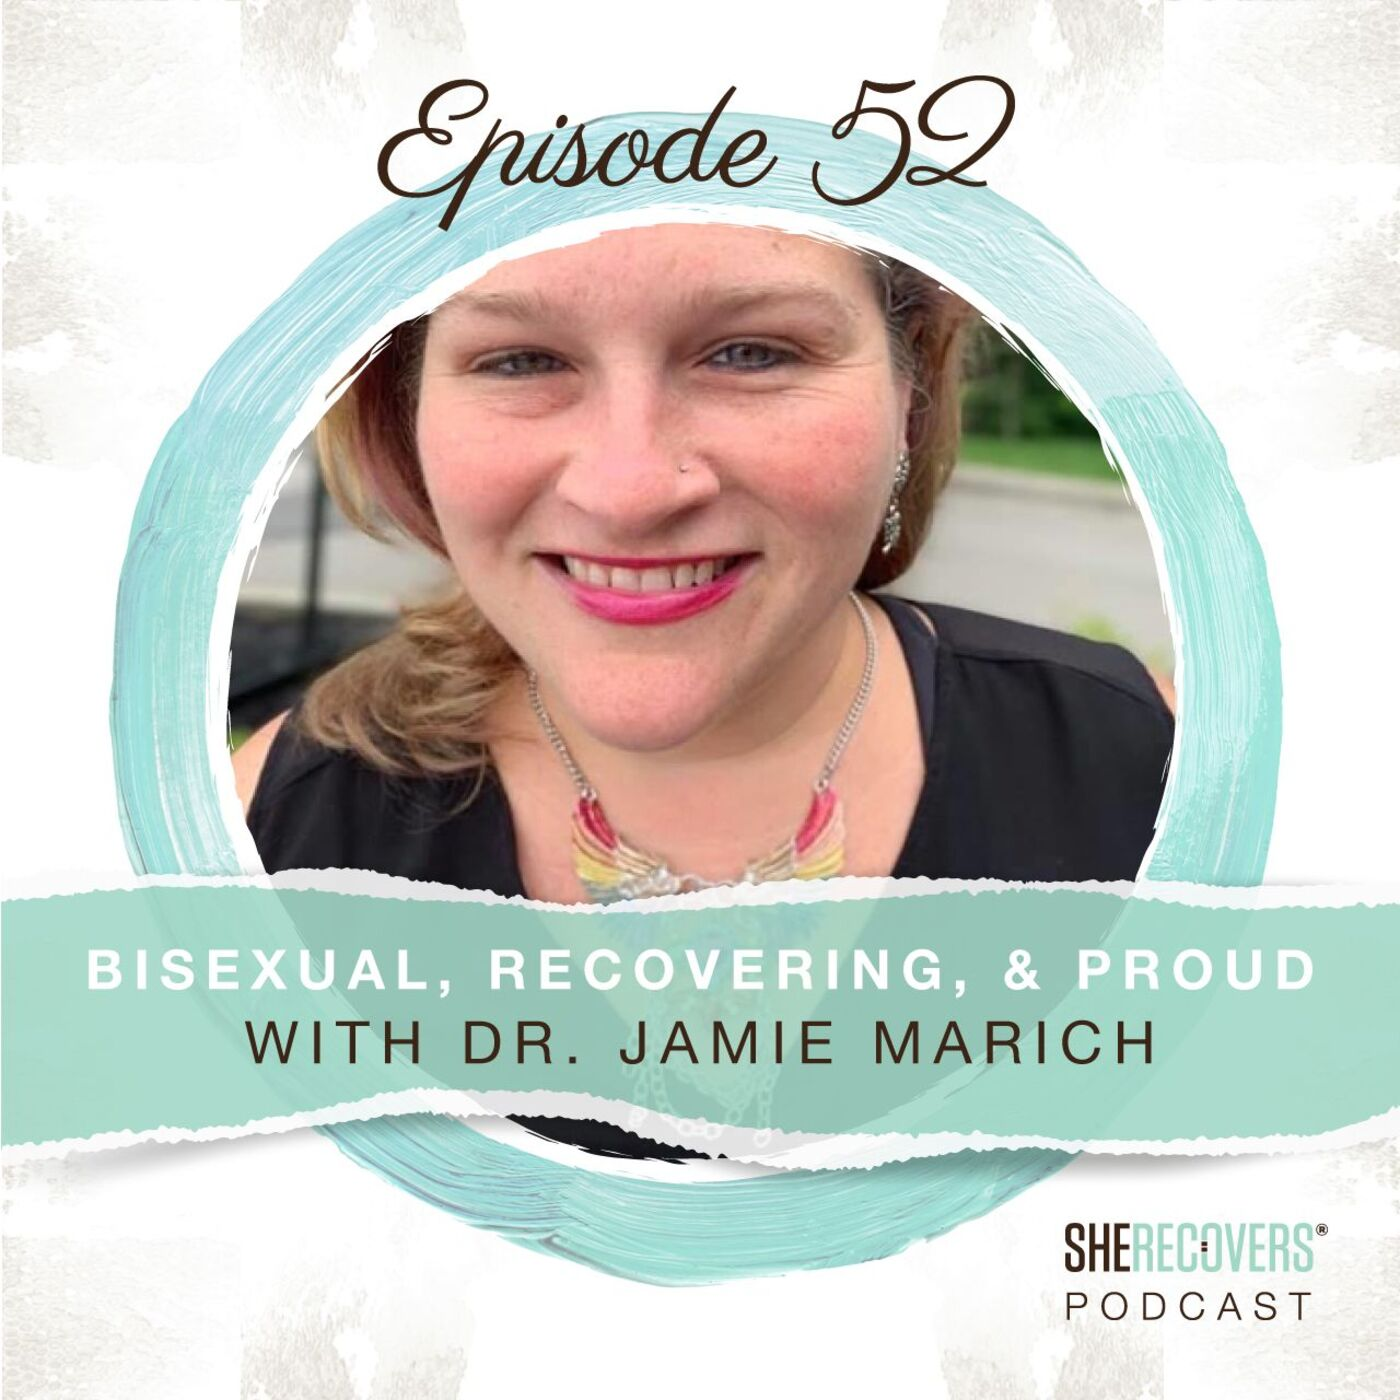 Episode 52: Bisexual, Recovering and Proud with Dr. Jamie Marich